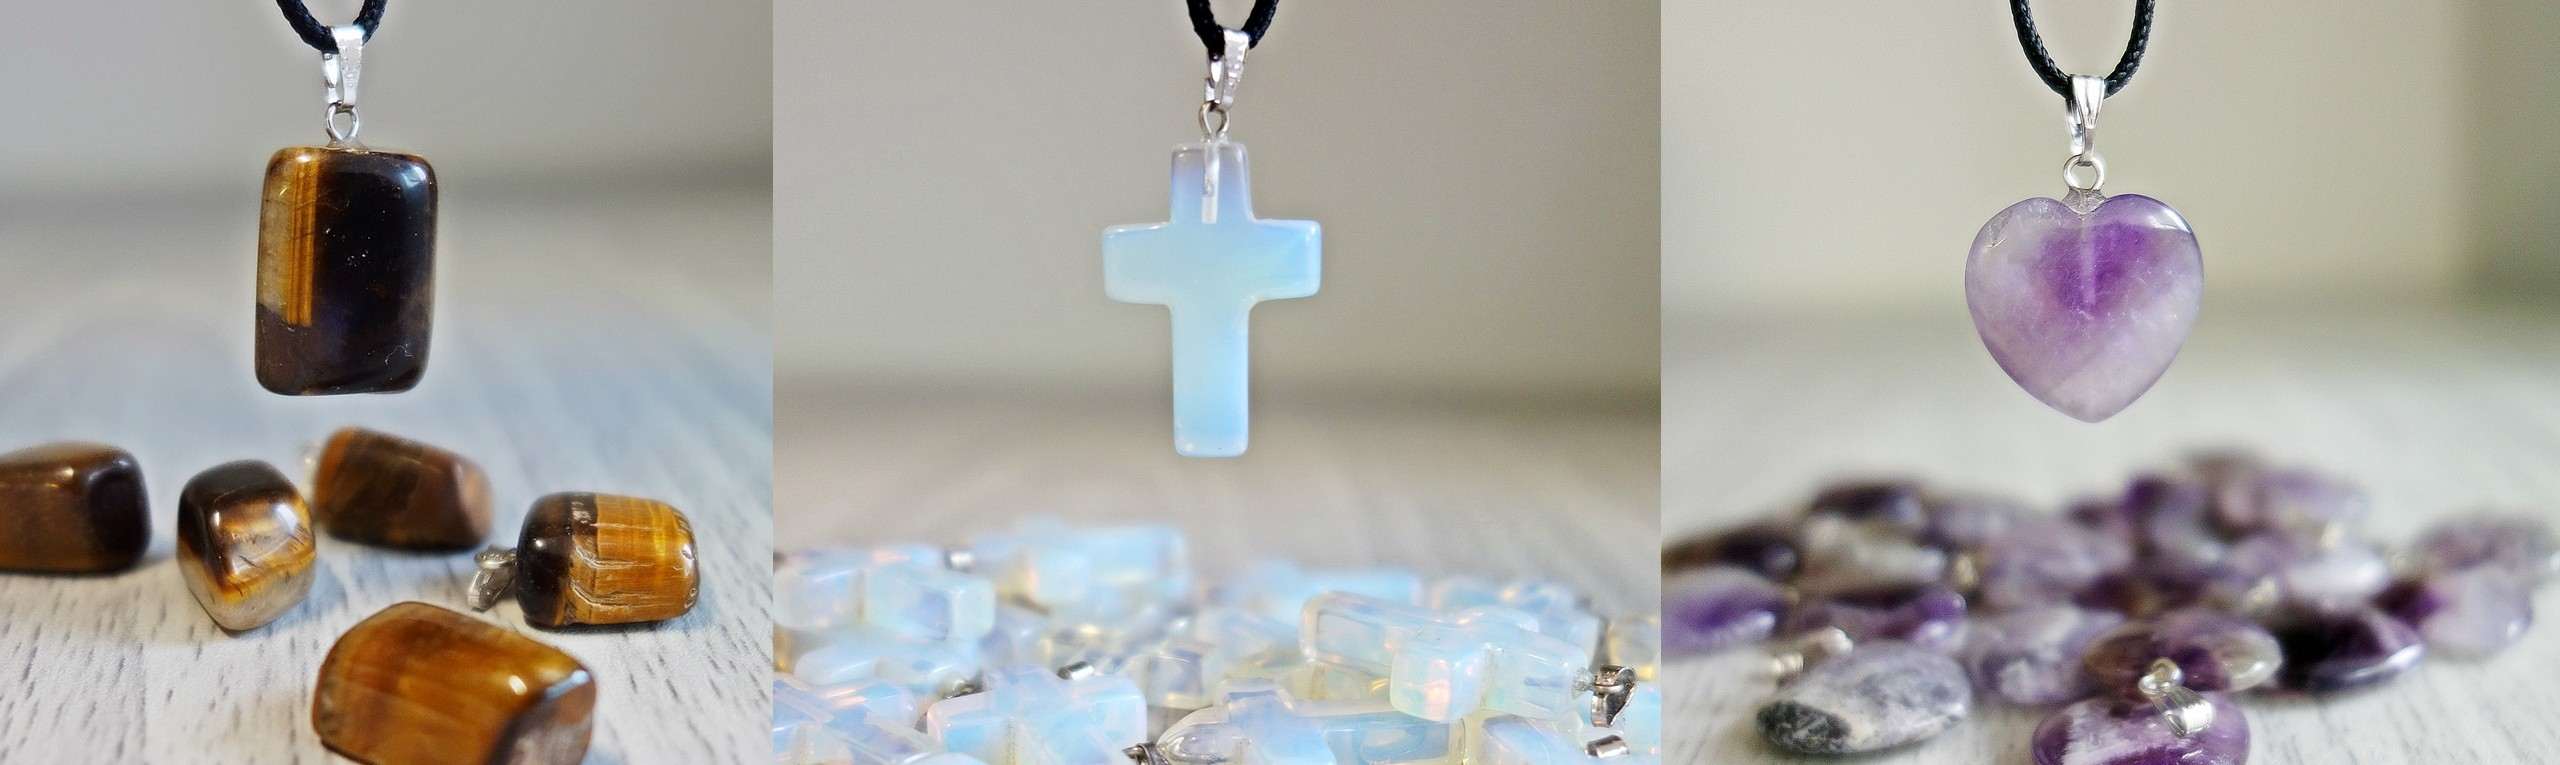 Necklaces from gemstones, mineral, medicinal, stone, jewelry for you